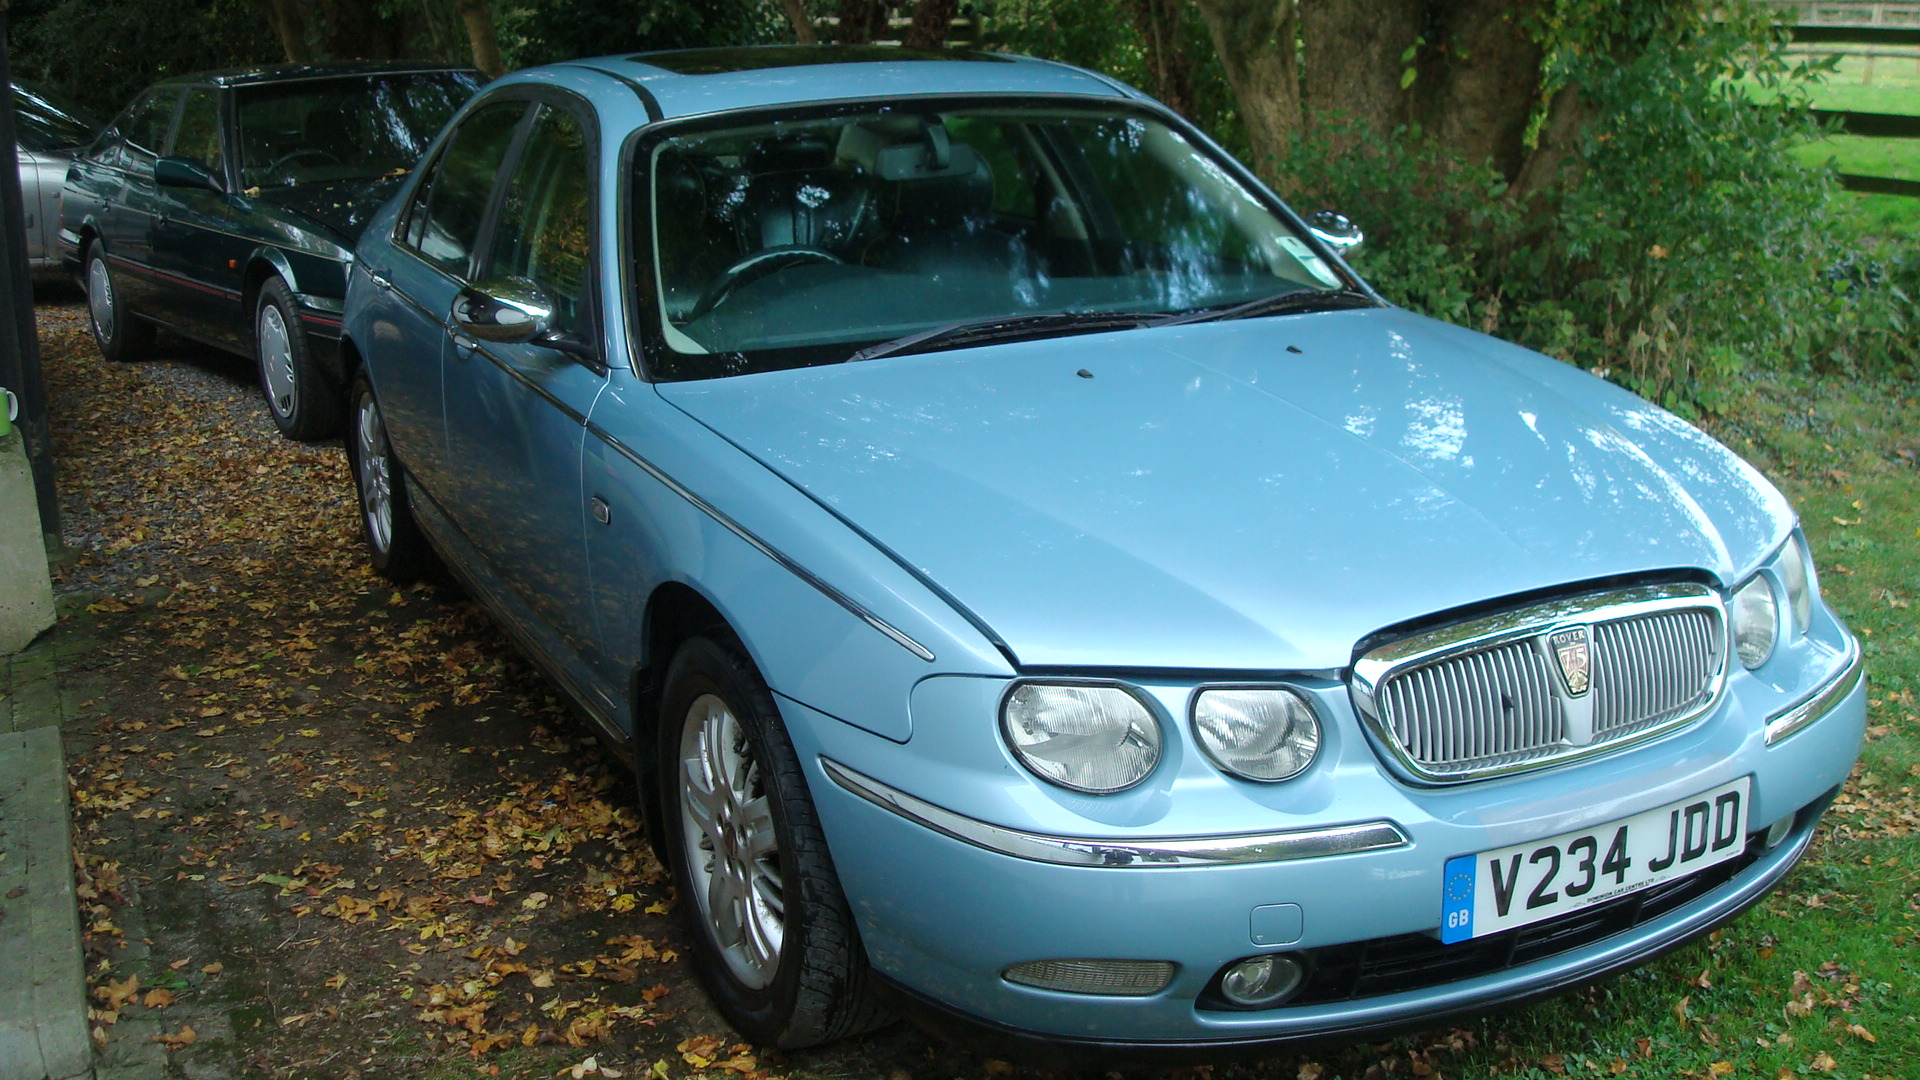 Rover 75 Car Manuals and Literature for sale | eBay